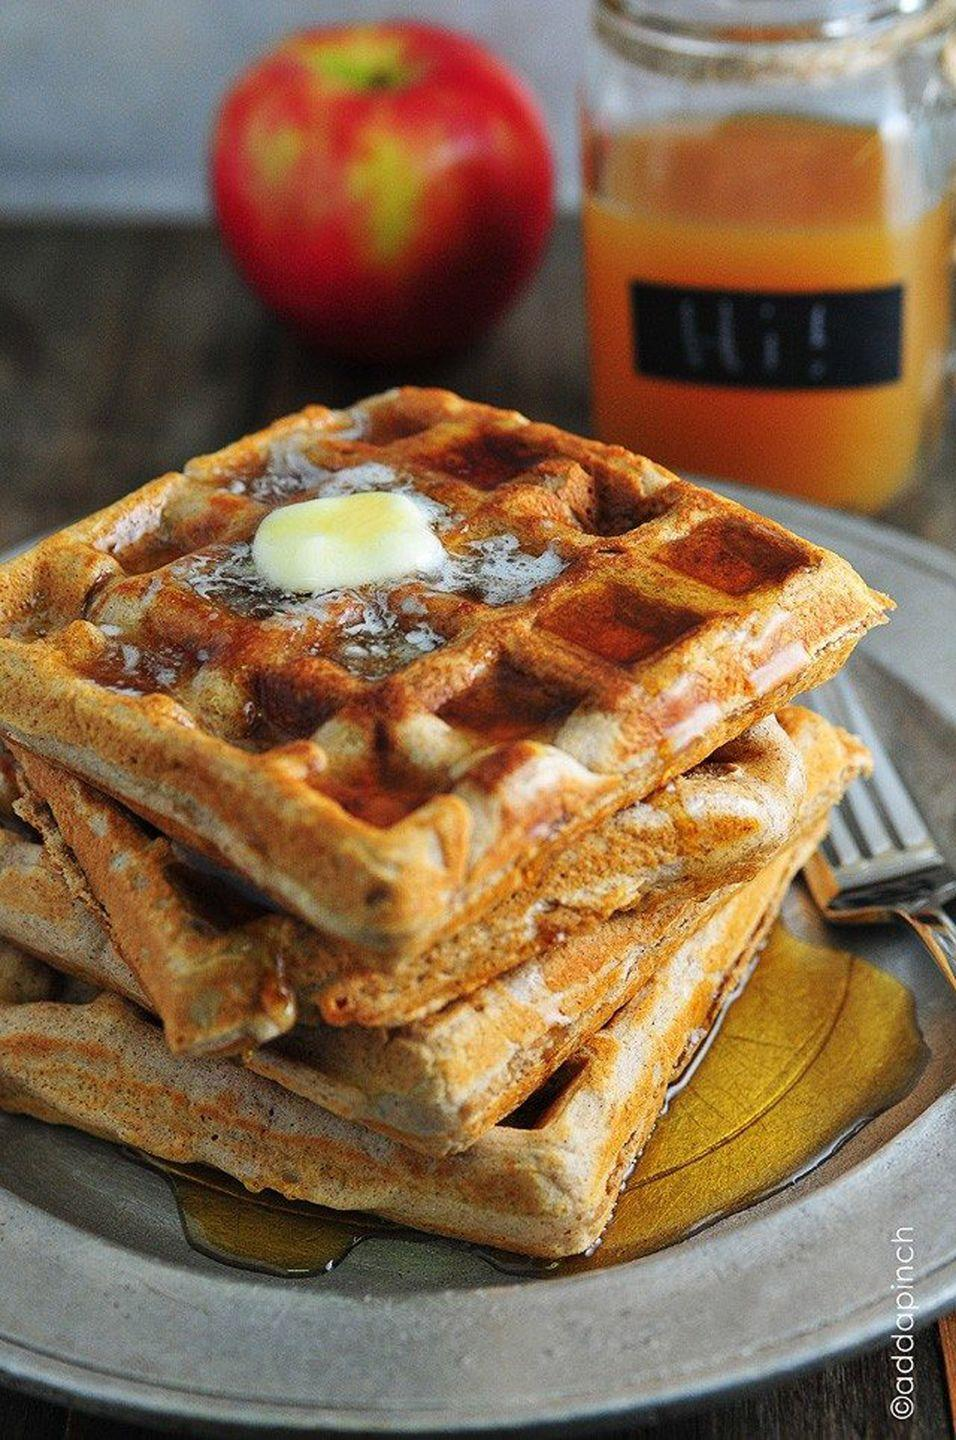 "<p>Put a spin on apple cider by adding it to warm waffles and dousing them with maple syrup.</p><p><strong>Get the recipe at <a href=""https://addapinch.com/waffle-recipe-apple-cider-waffles/"" rel=""nofollow noopener"" target=""_blank"" data-ylk=""slk:Add a Pinch"" class=""link rapid-noclick-resp"">Add a Pinch</a>.</strong></p>"